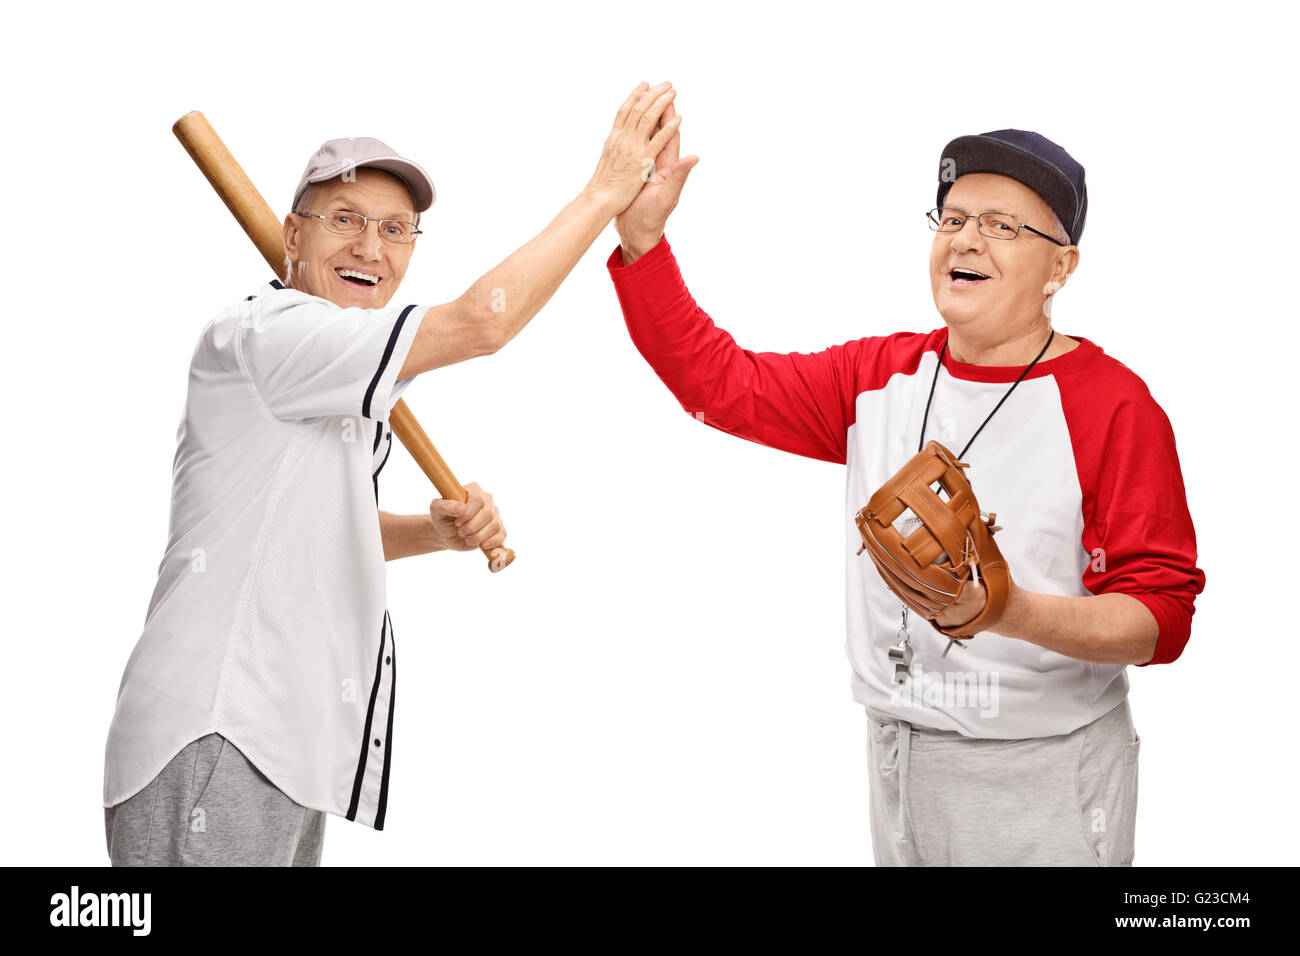 Two seniors in baseball sportswear high-five each other isolated on white background - Stock Image